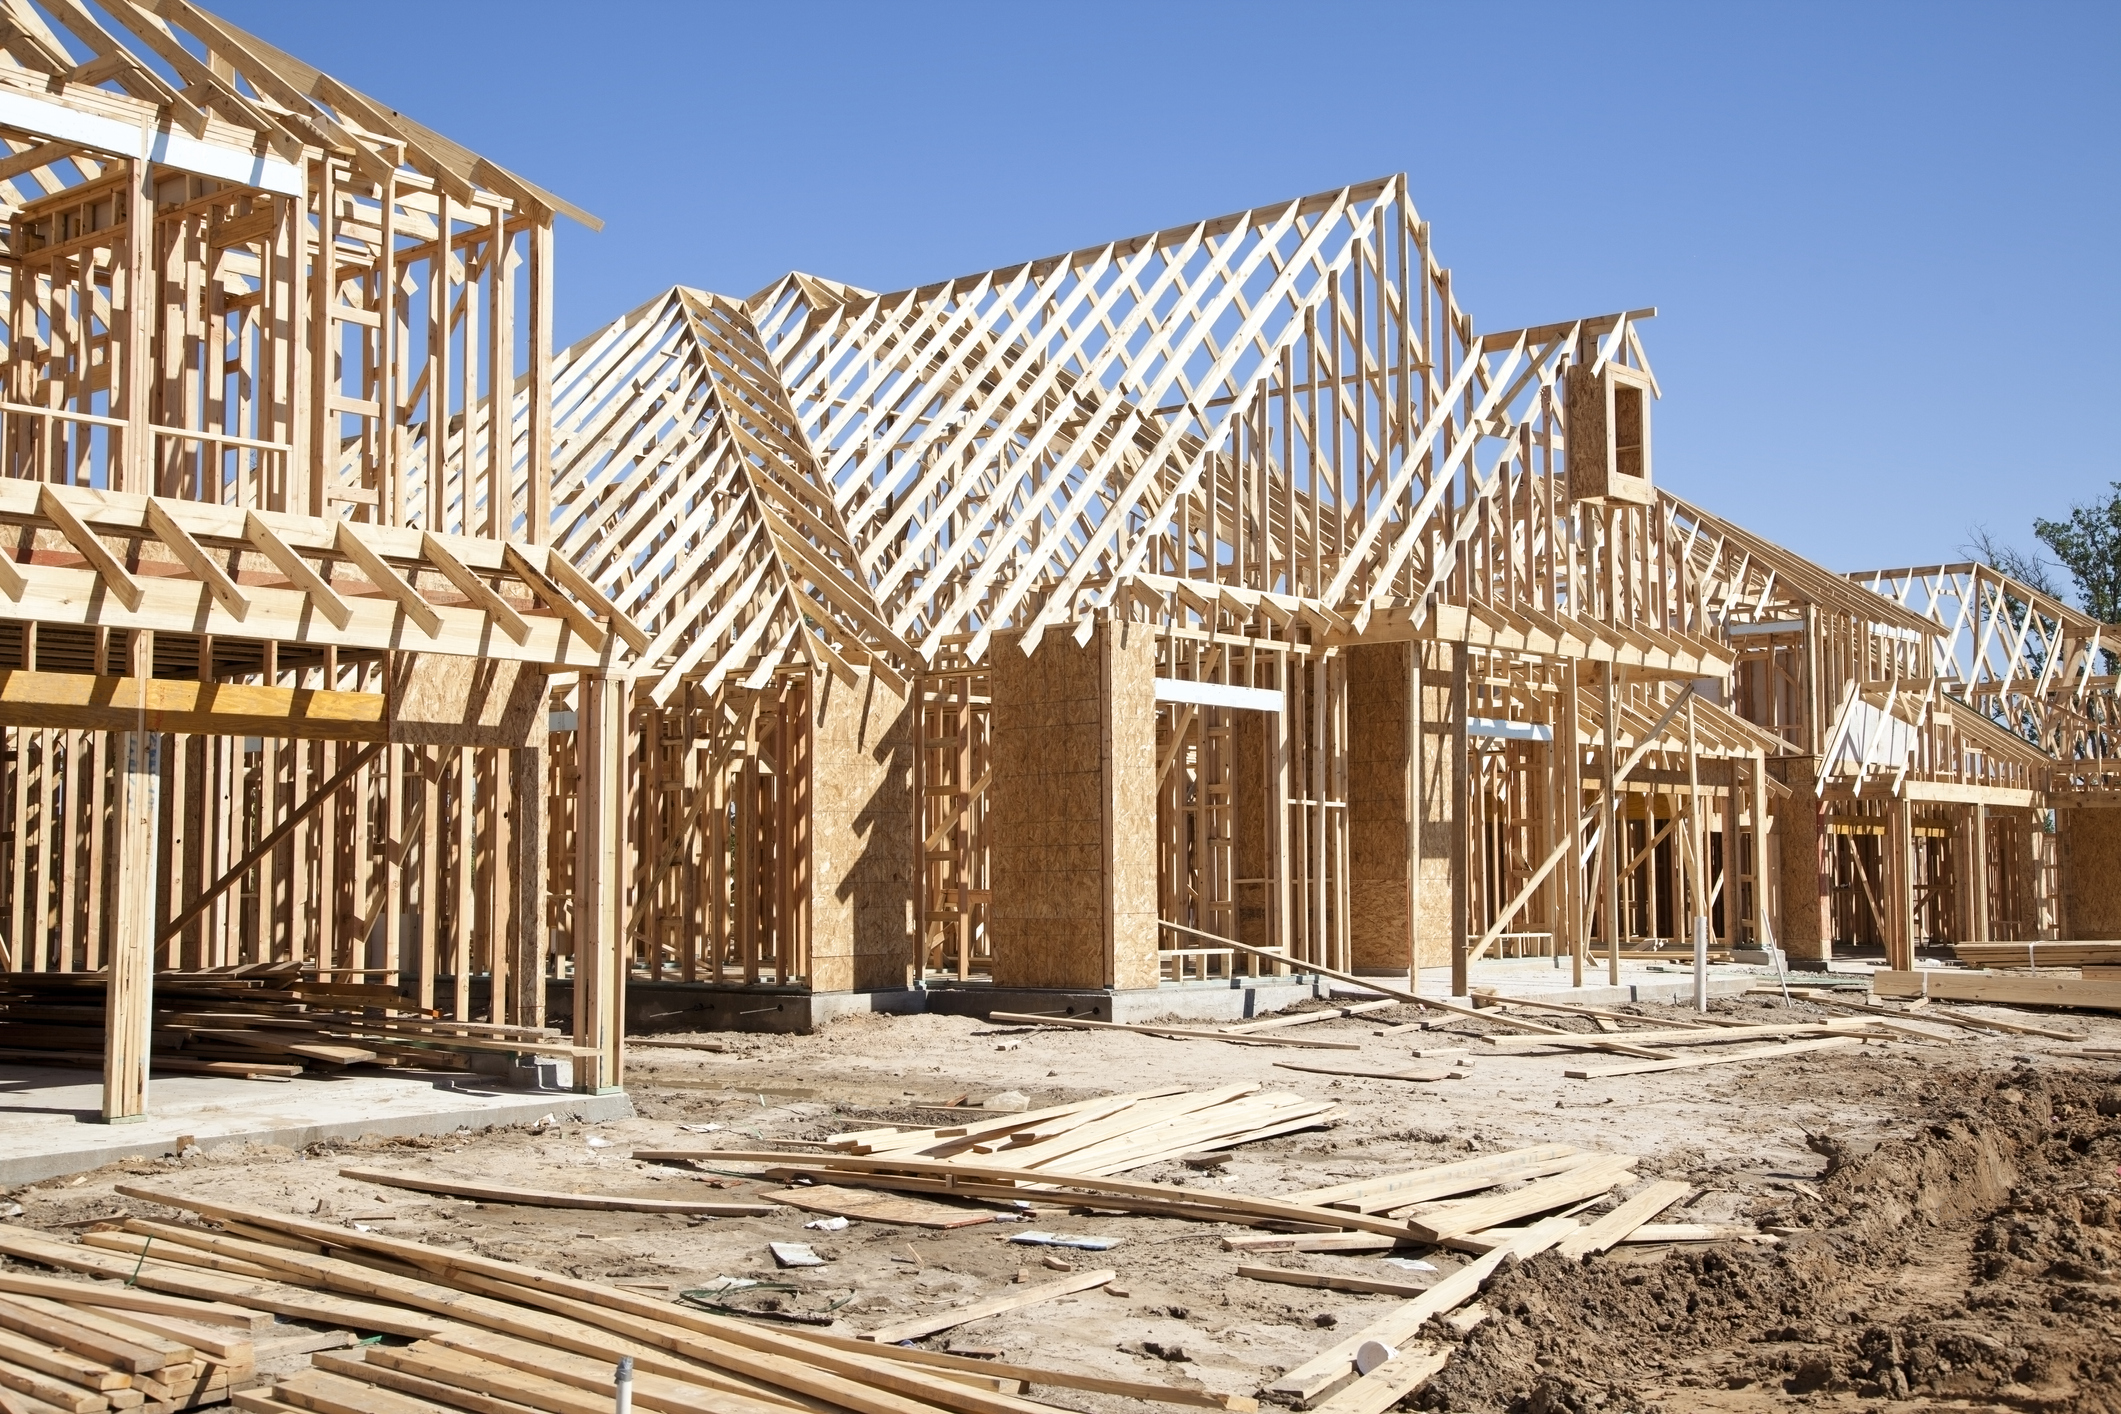 Framing of new homes under construction